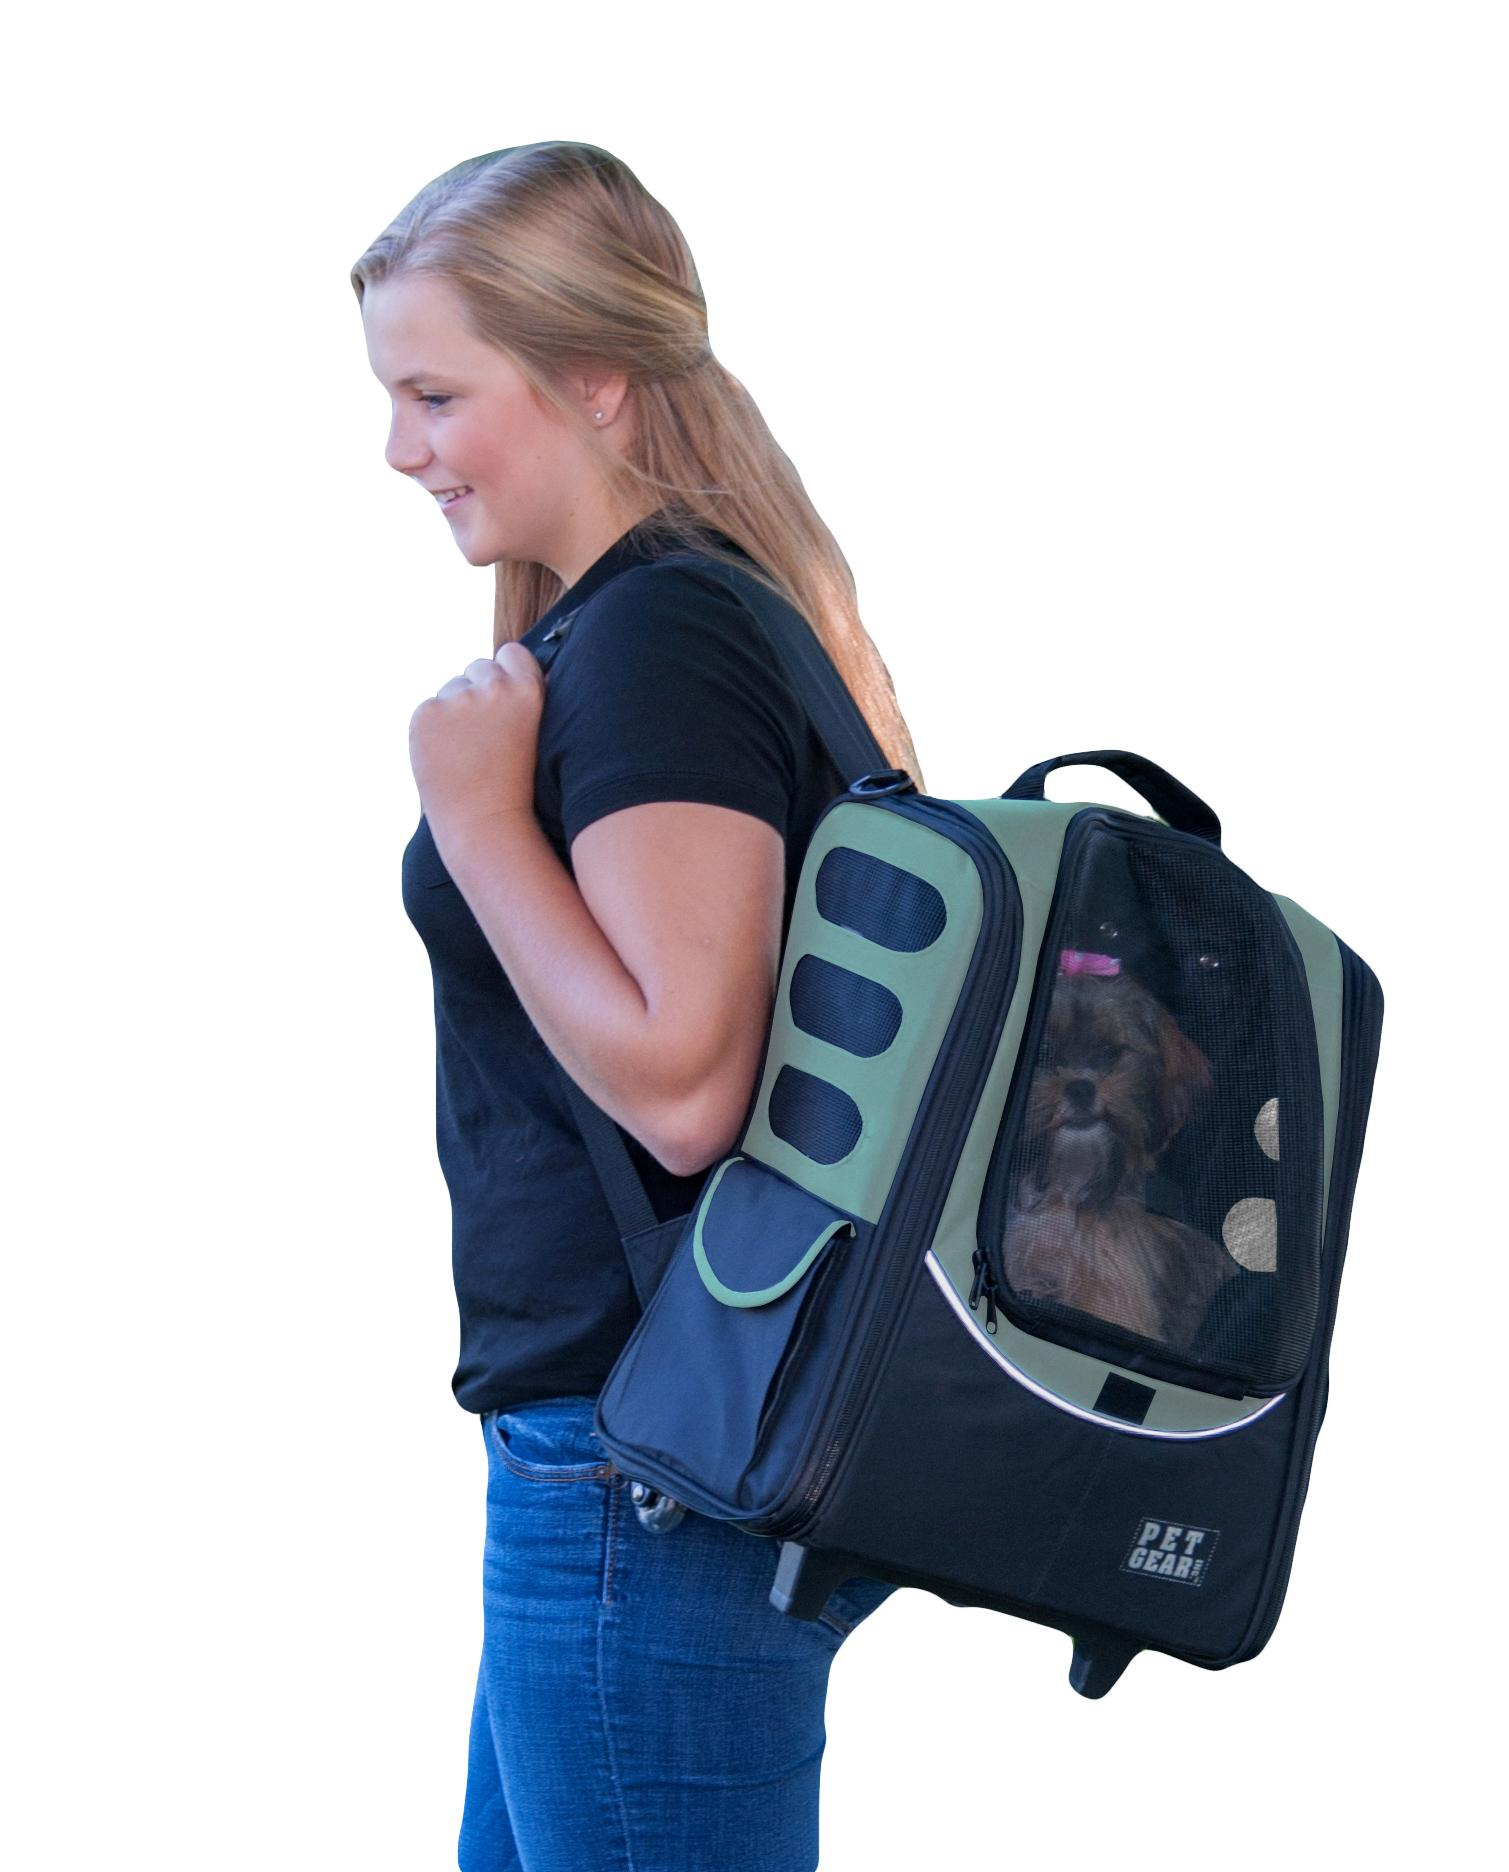 Amazon Pet Gear I GO2 Sport Roller Backpack for cats and